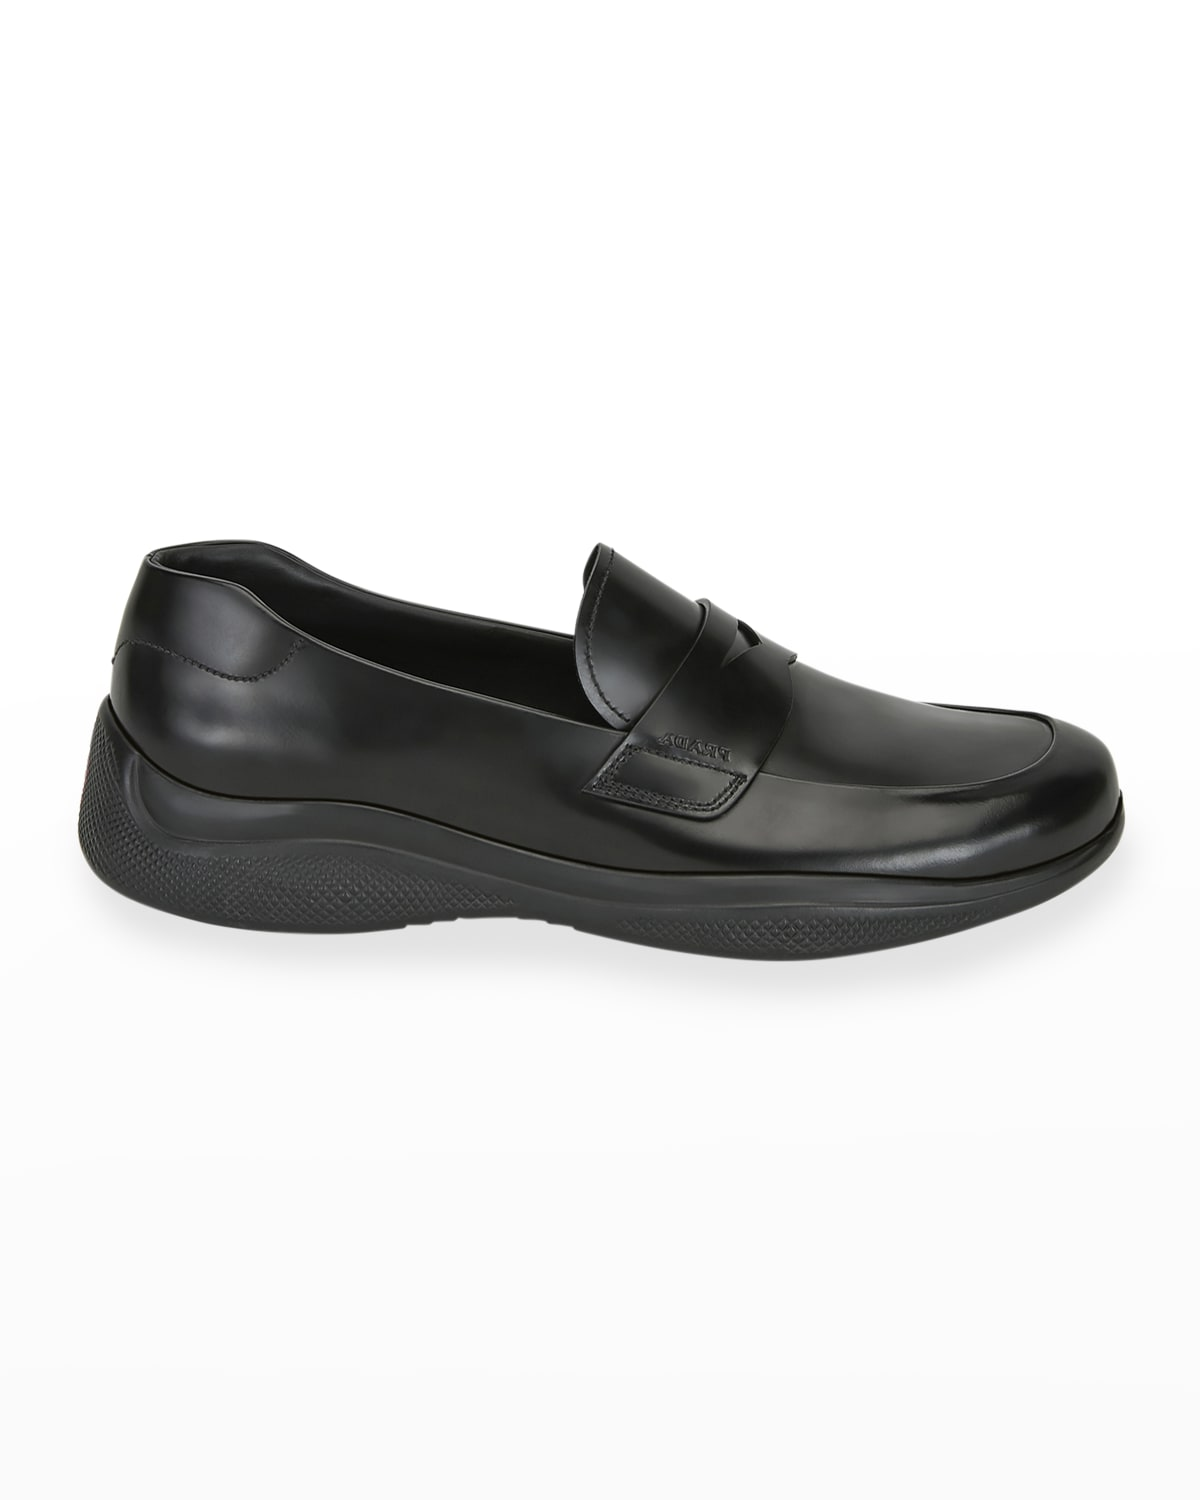 Men's Spazzolato Leather Penny Loafers